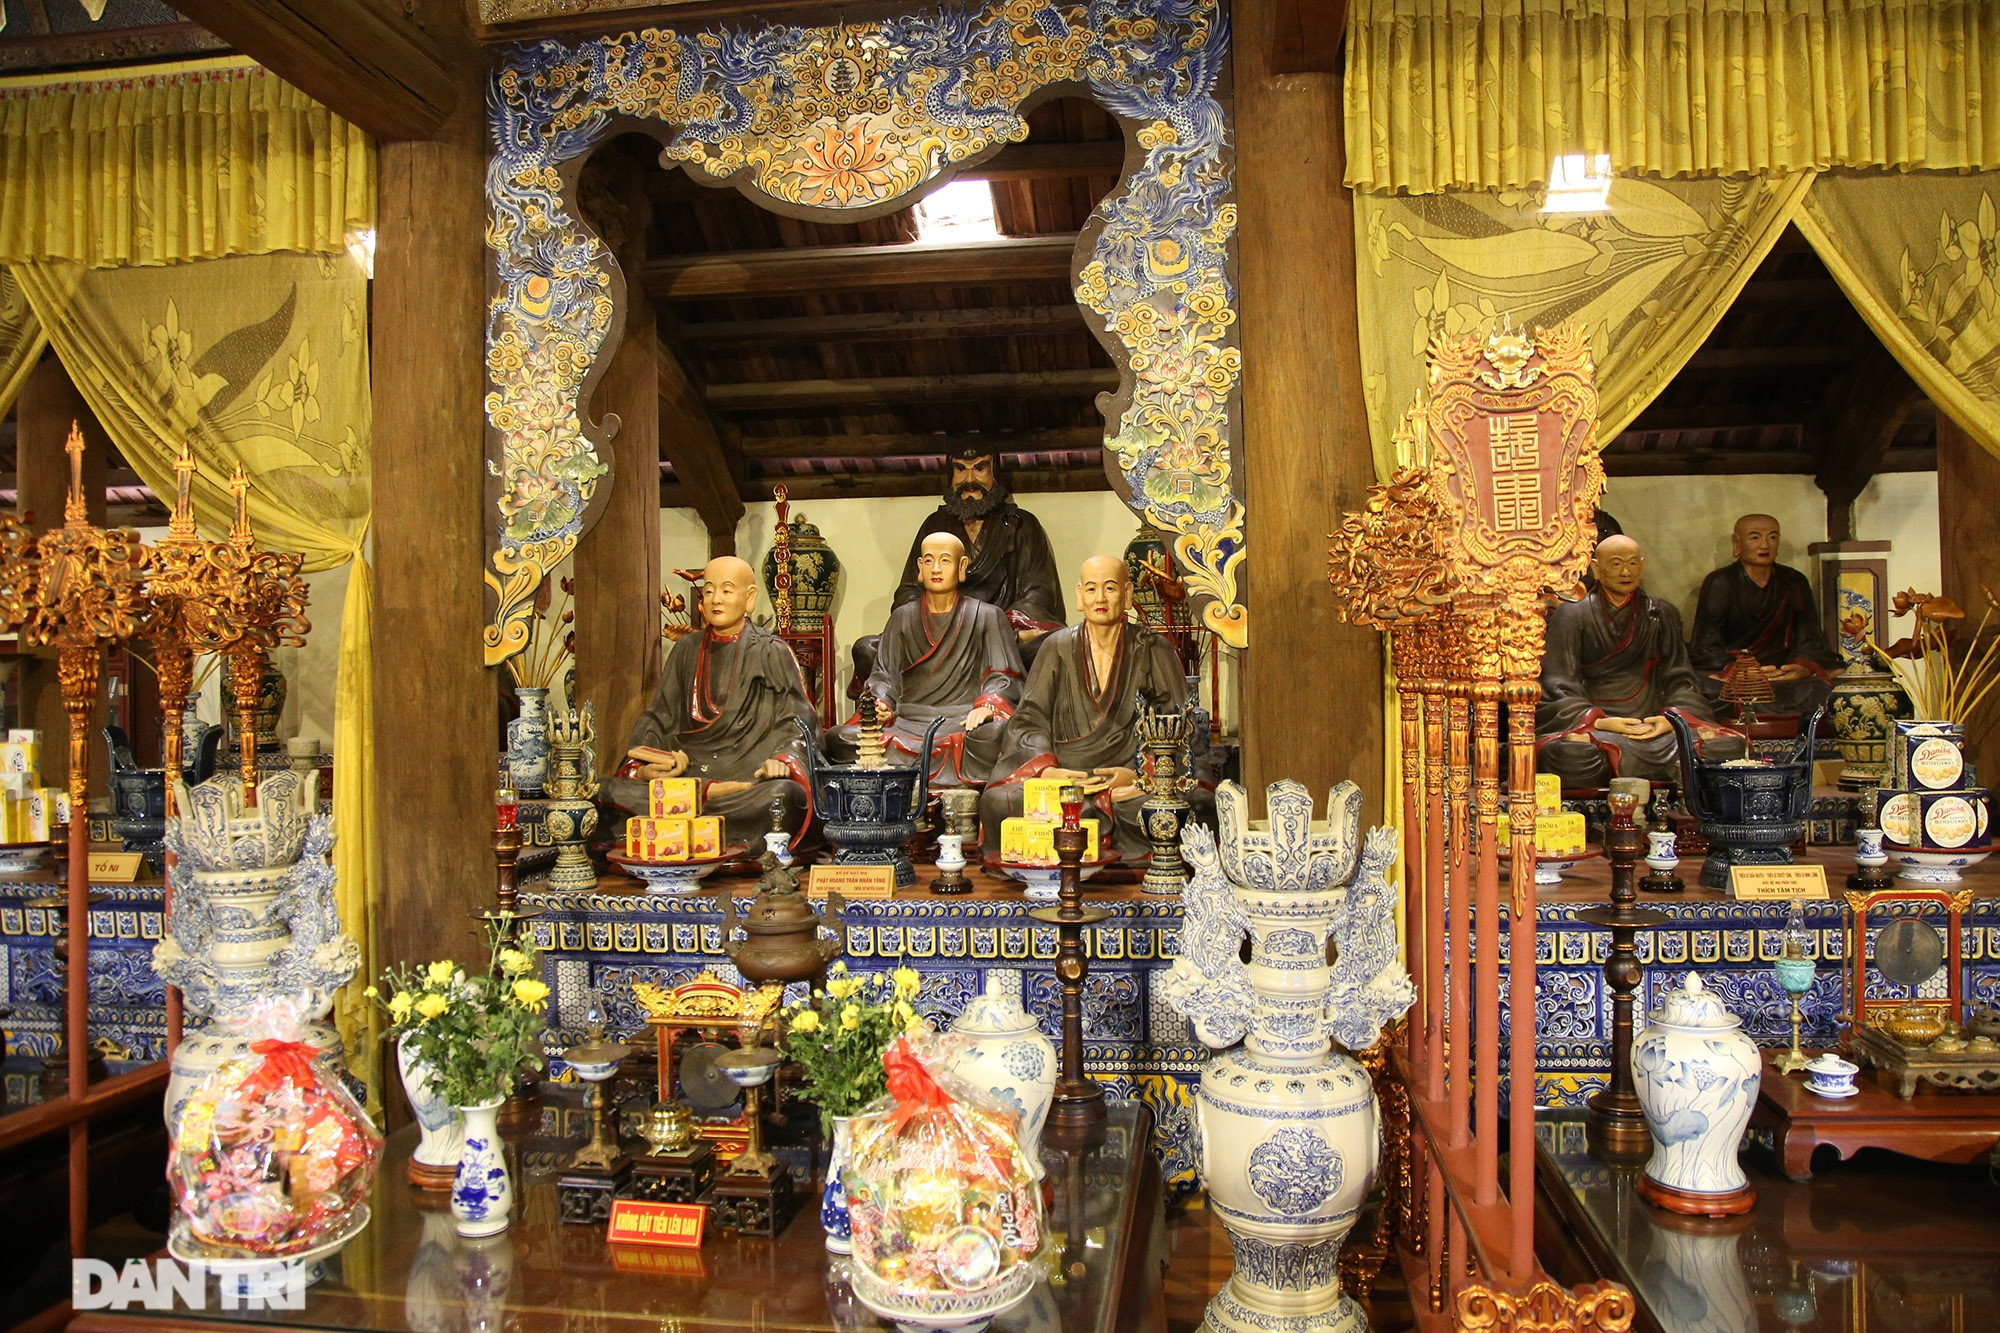 Ceramic pagoda built from tens of thousands of traditional handicrafts in Bat Trang - 2